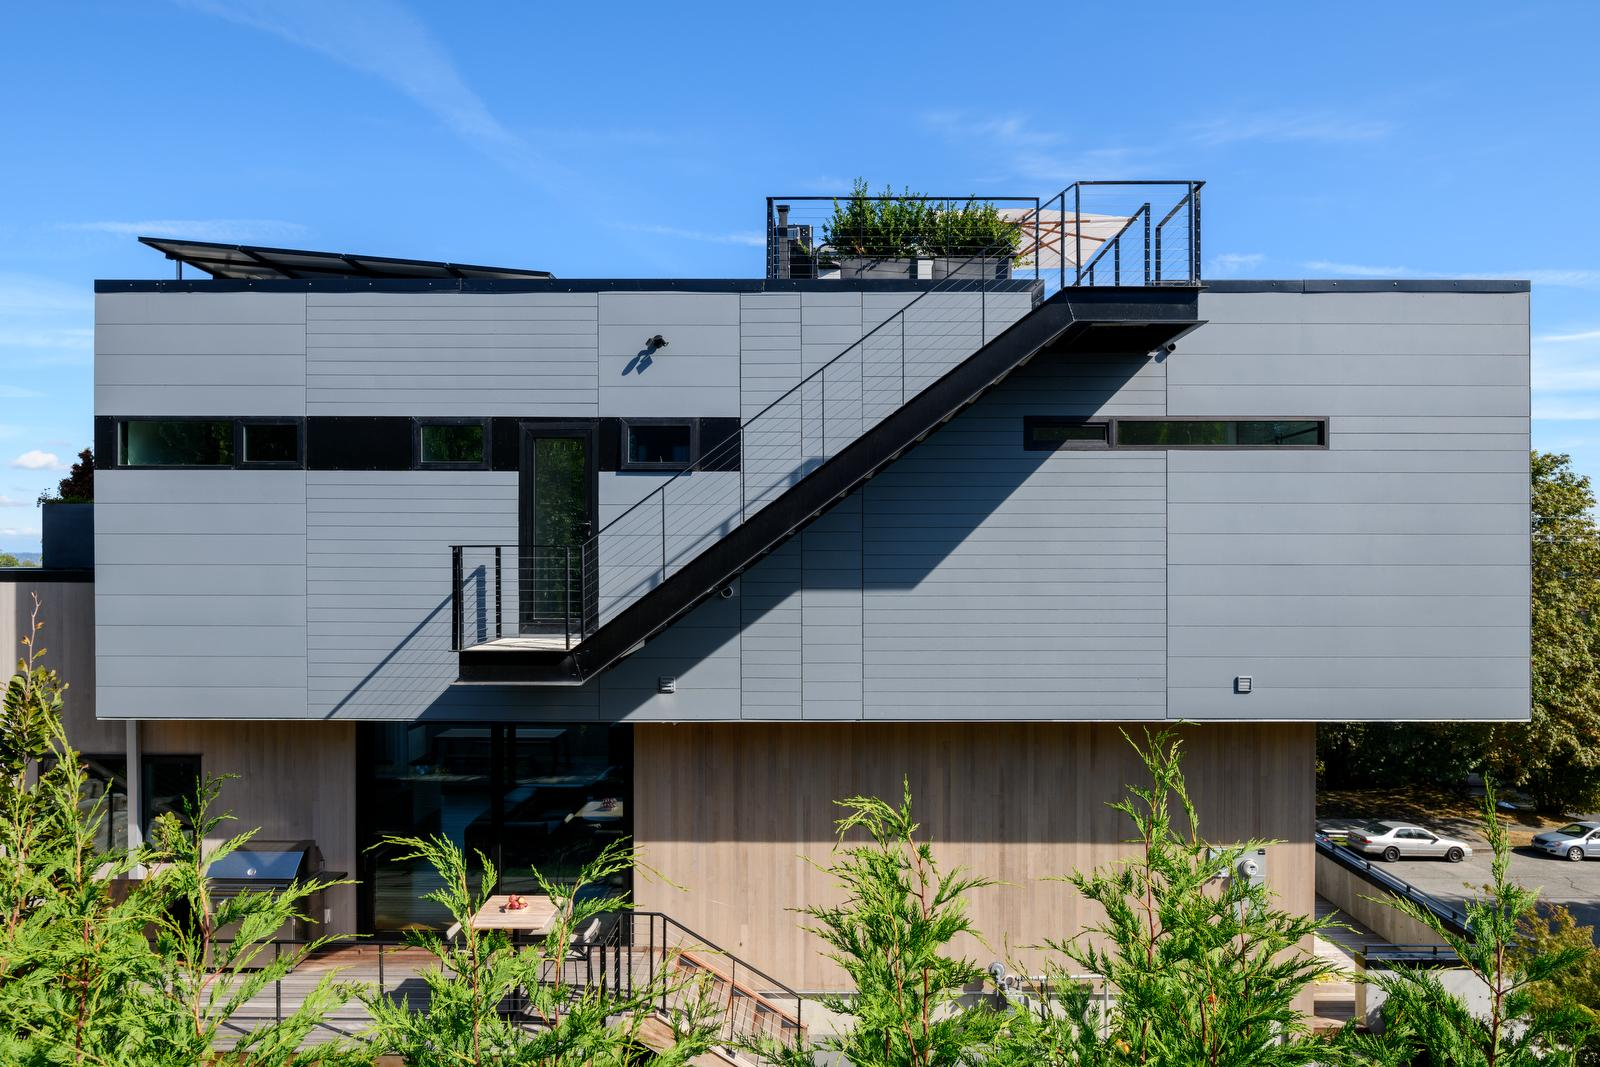 <p>This week we're previewing houses from Seattle's 2019 Modern Home Tour, happening Saturday, April 27. First up is this 3 bed/3.5 bath home{&amp;nbsp;} in the Madison Park neighborhood.{&amp;nbsp;} Built in 2018, the home is approximately 3,000 square feet, and its three levels are fitted snugly to a sloping hillside. Decks and terraces are found at all levels, perfect for the Cascade mountains views. Built: Lane Williams Architects, Norm Gove of Cambridge Custom Homes; Landscape: Martha Shapiro, Shapiro Ryan Design; Interior: Elizabeth Stretch, Stretch Design. More info &amp; tickets at{&amp;nbsp;}<a  href=&quot;http://mads.media/2019-seattle-modern-home-tour/&quot; target=&quot;_blank&quot; title=&quot;http://mads.media/2019-seattle-modern-home-tour/&quot;>mads.media/2019-seattle-modern-home-tour</a>. (Image: Will Austin Photography)</p>